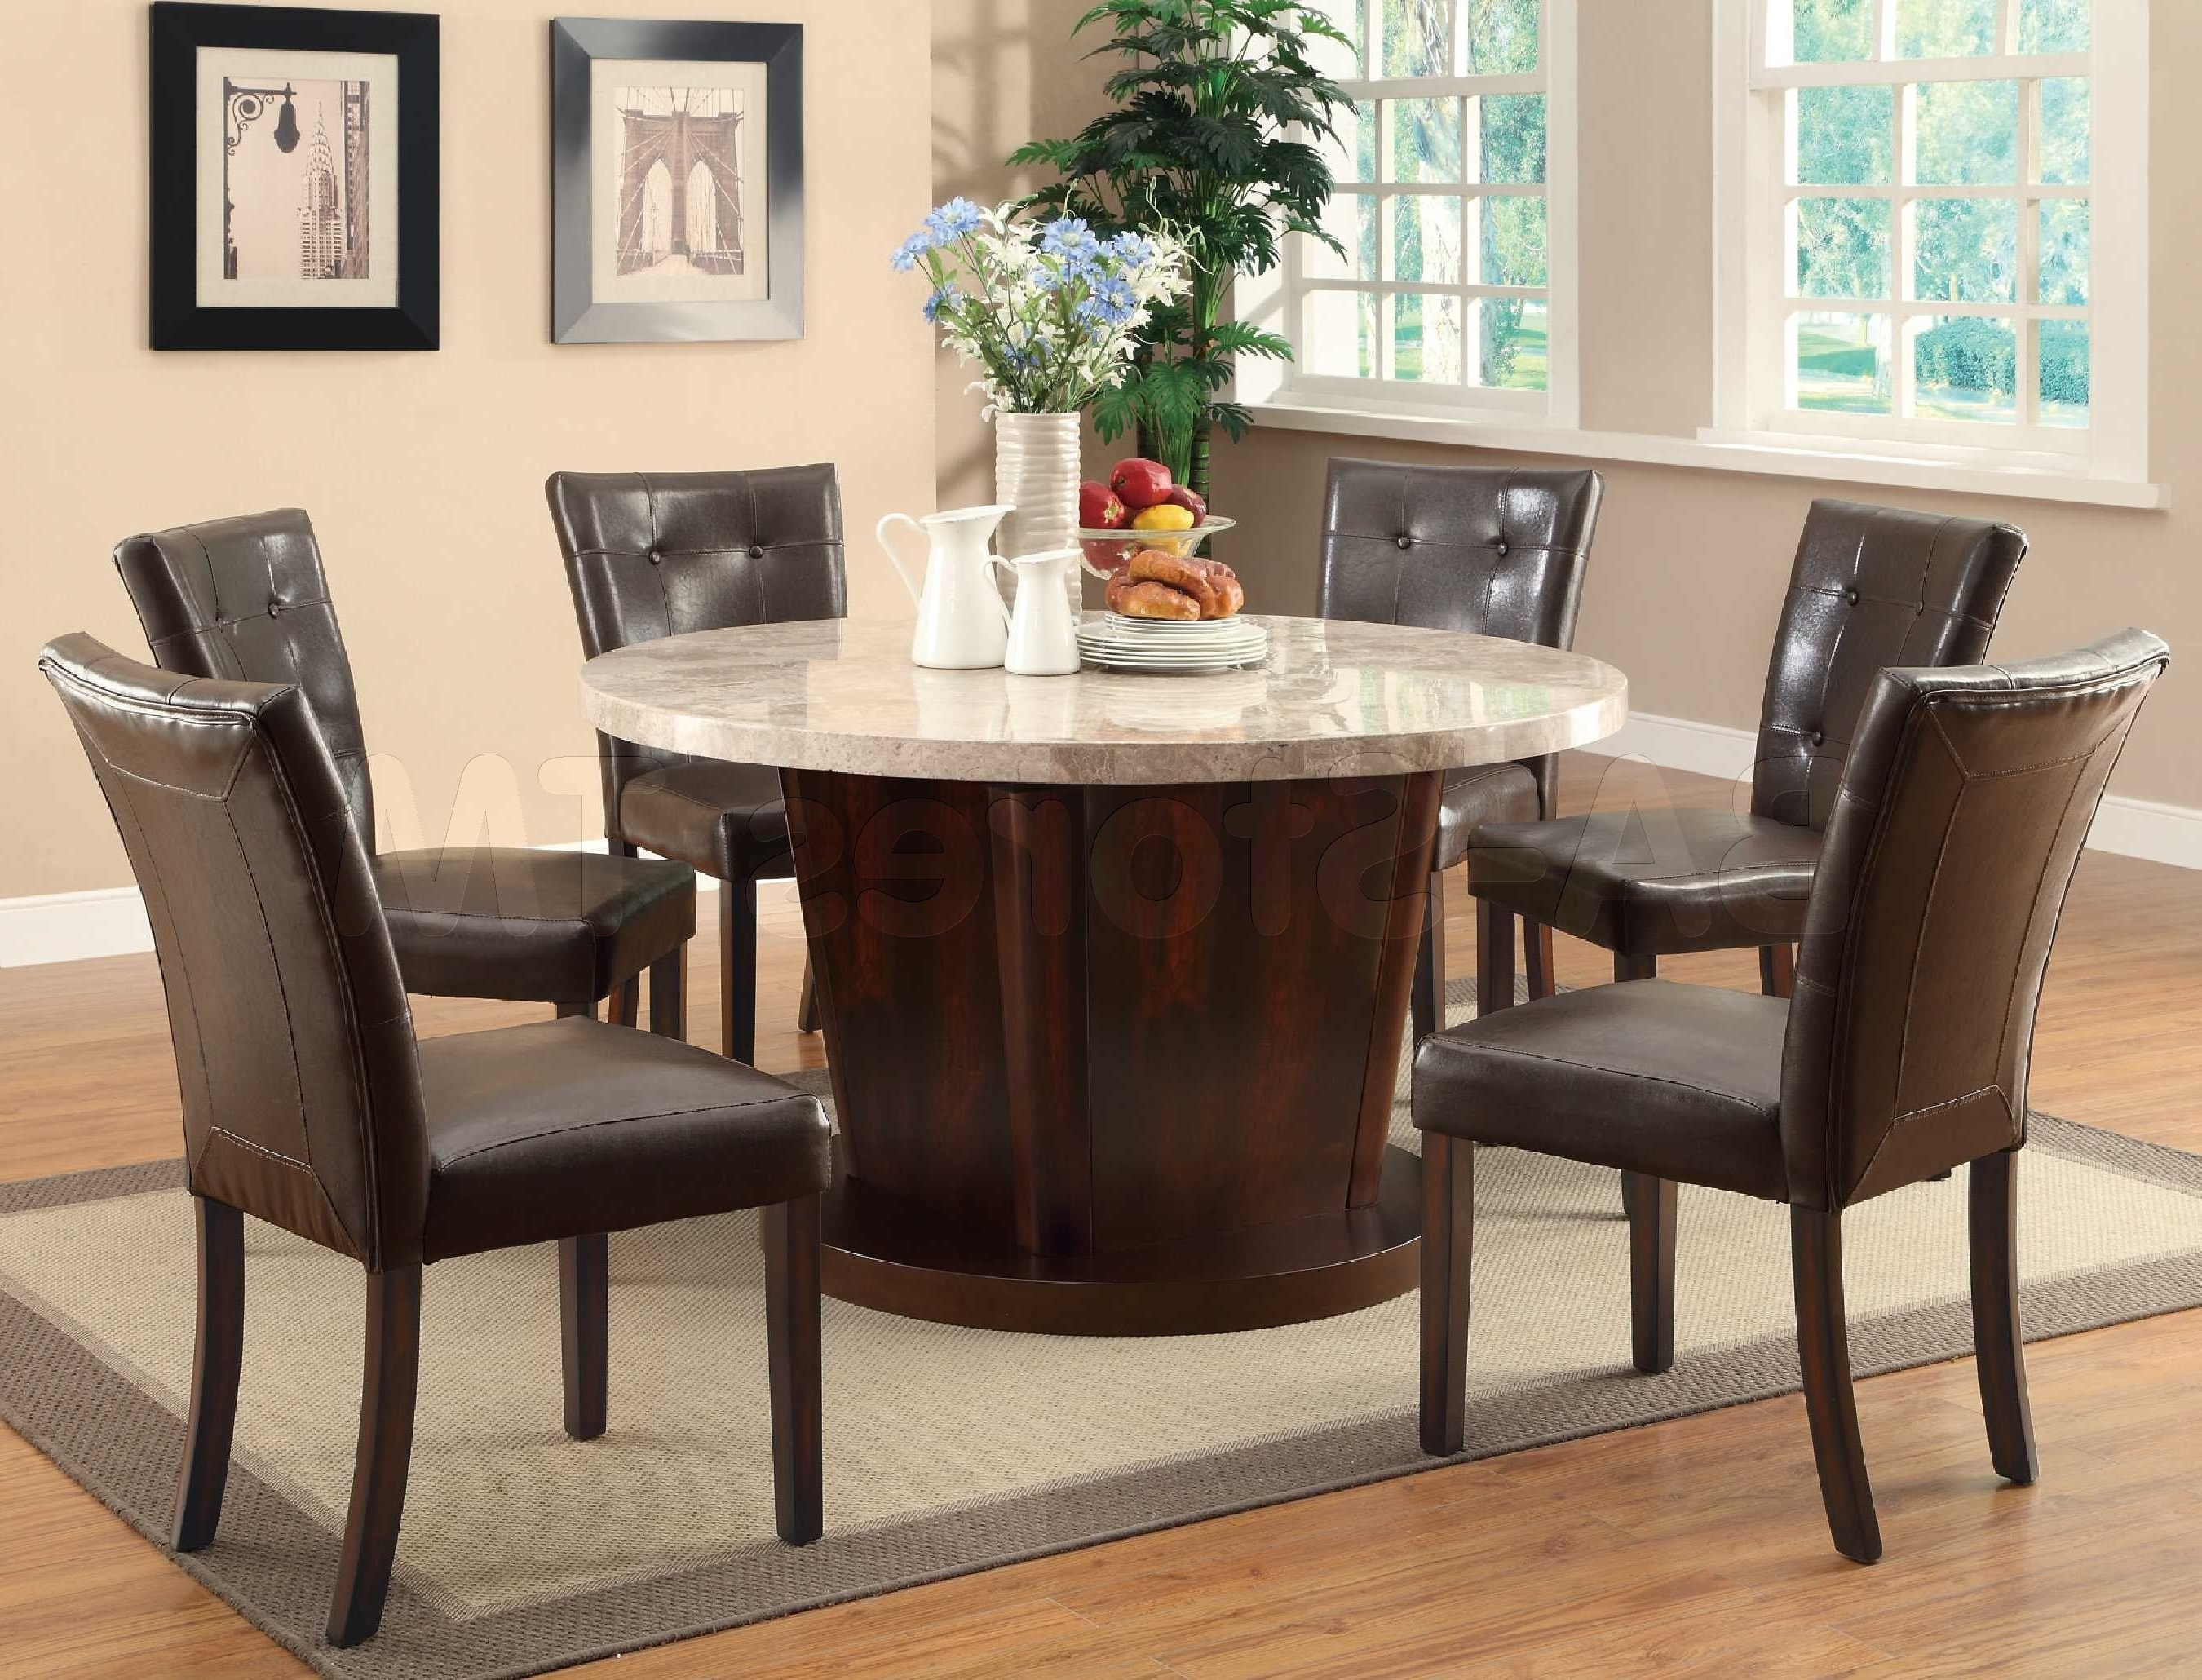 Most Recent 6 Seat Round Dining Tables Throughout Decorating Nice Dining Table Set 6 Seater Round Room Sets For Home (View 9 of 25)